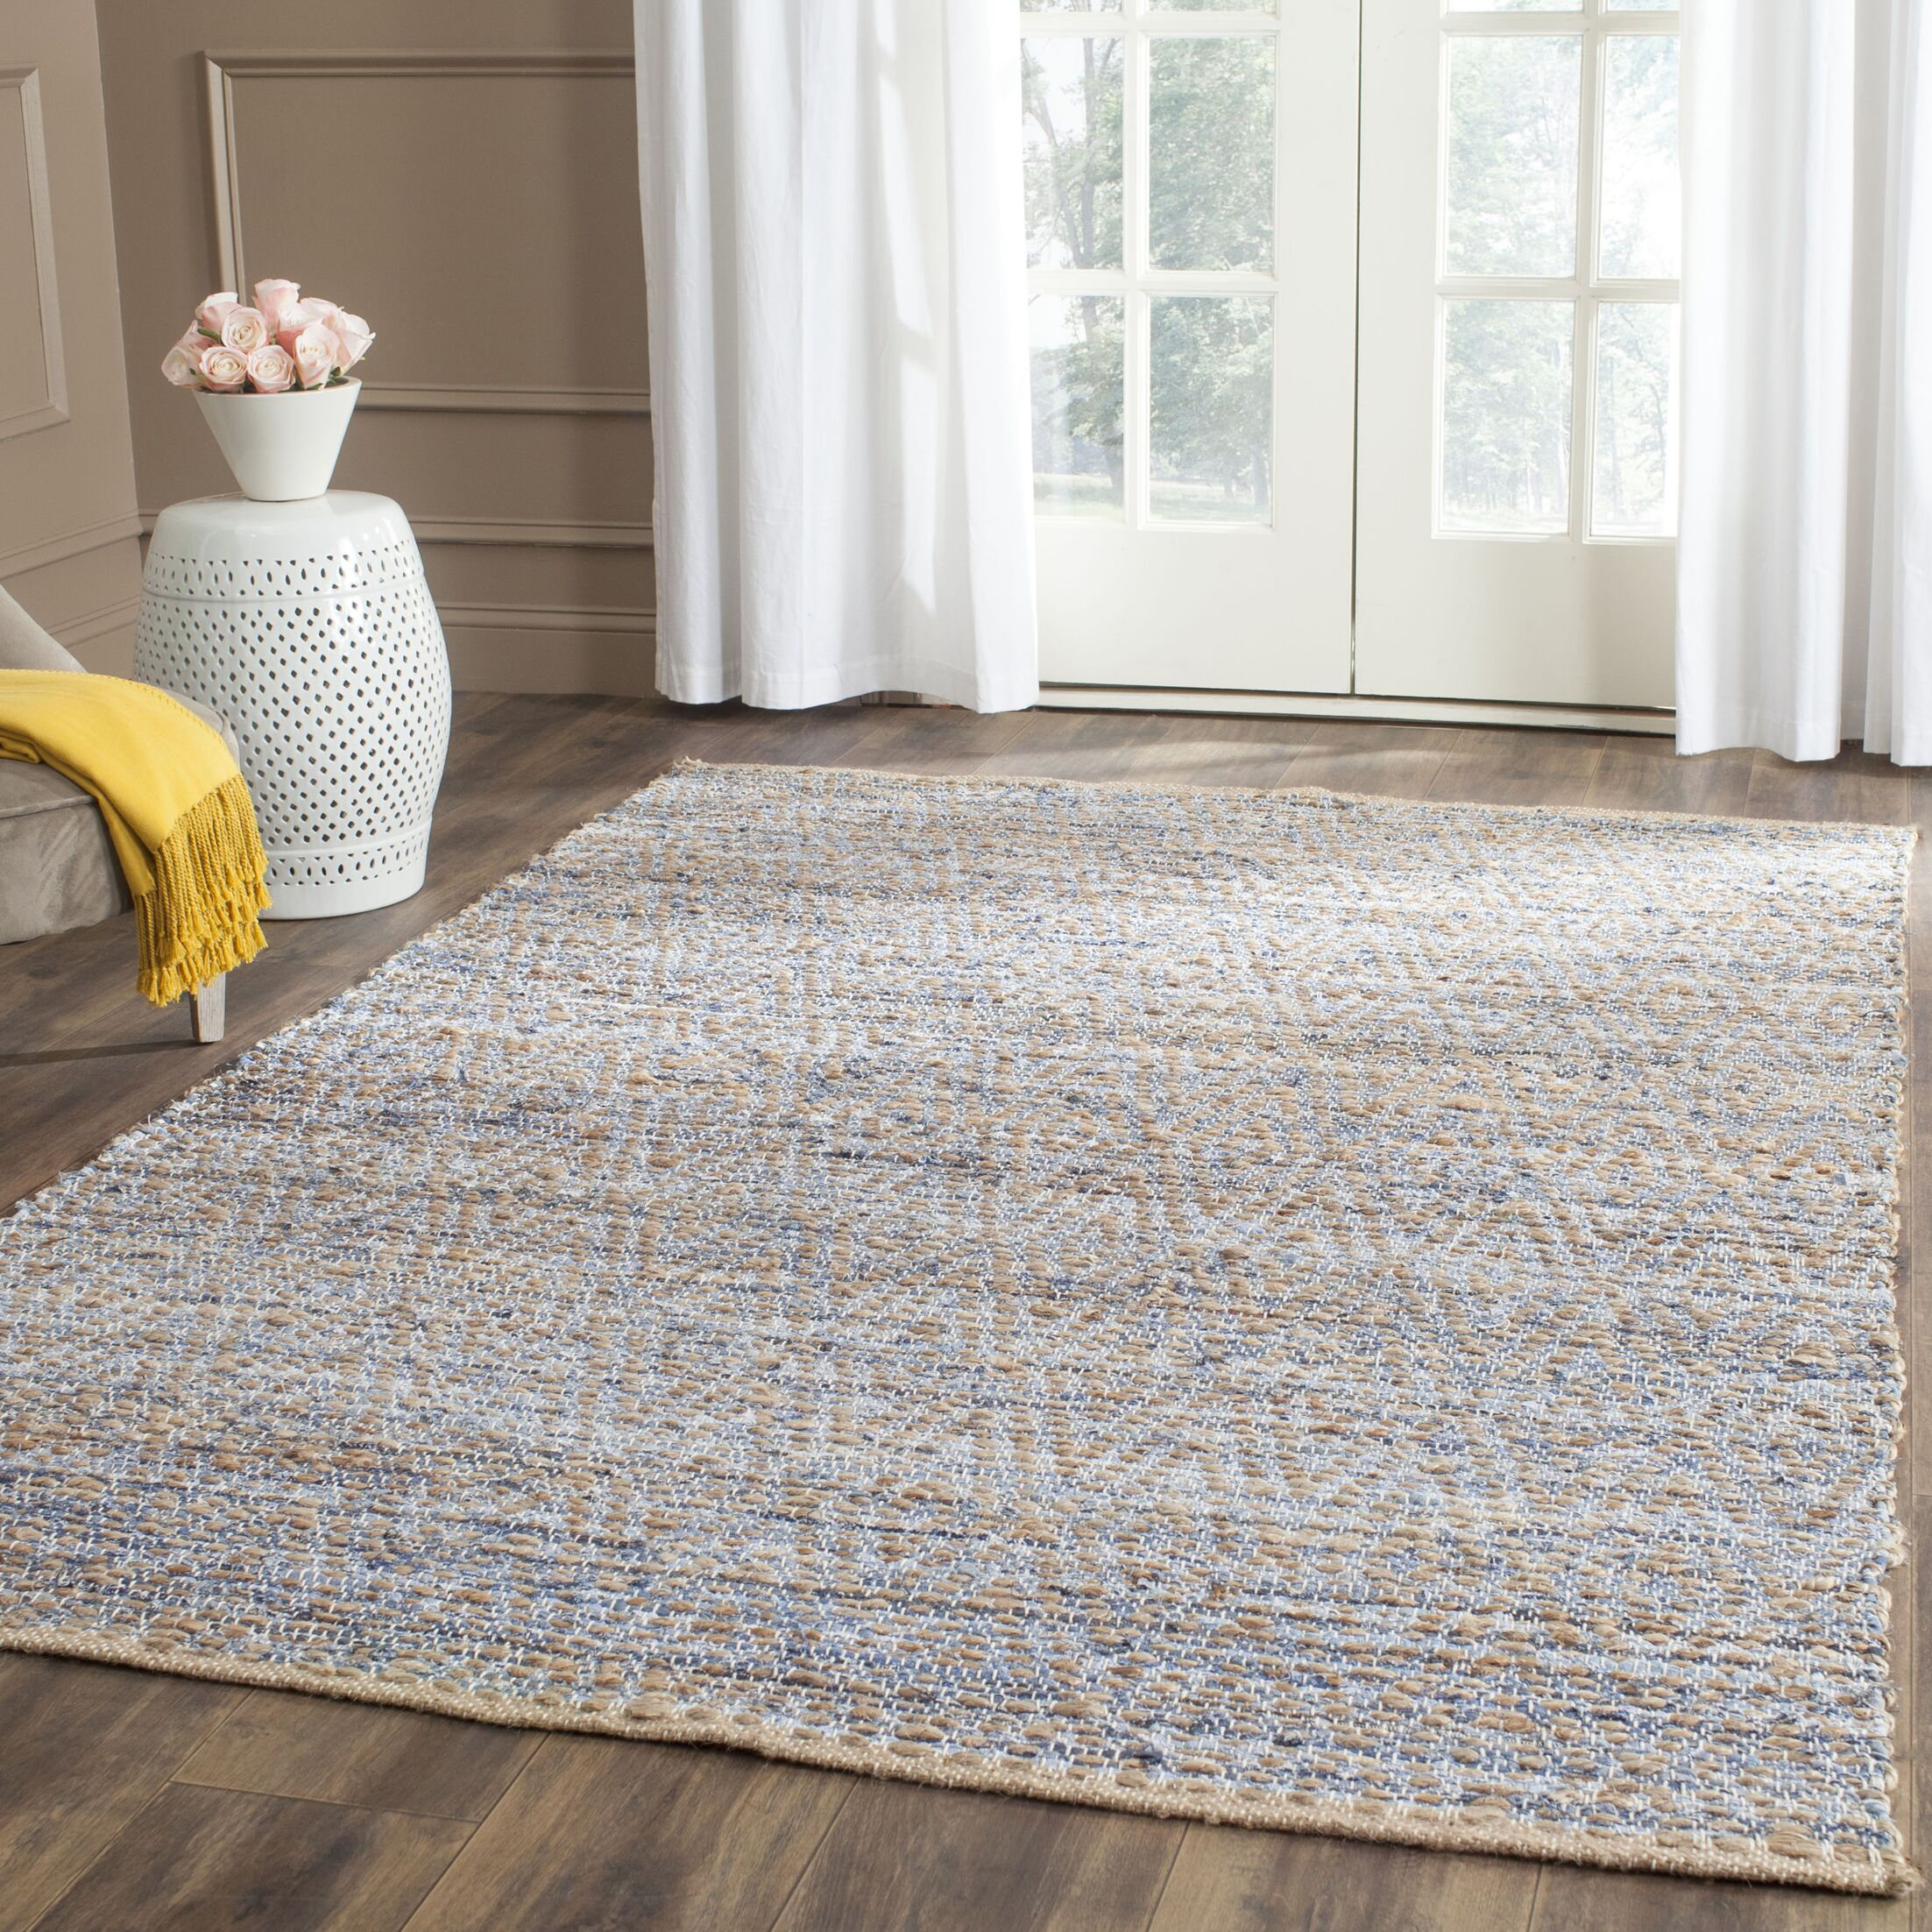 Arria Hand-Woven Natural/Blue Jute Area Rug Rug Size: Rectangle 9' x 12'